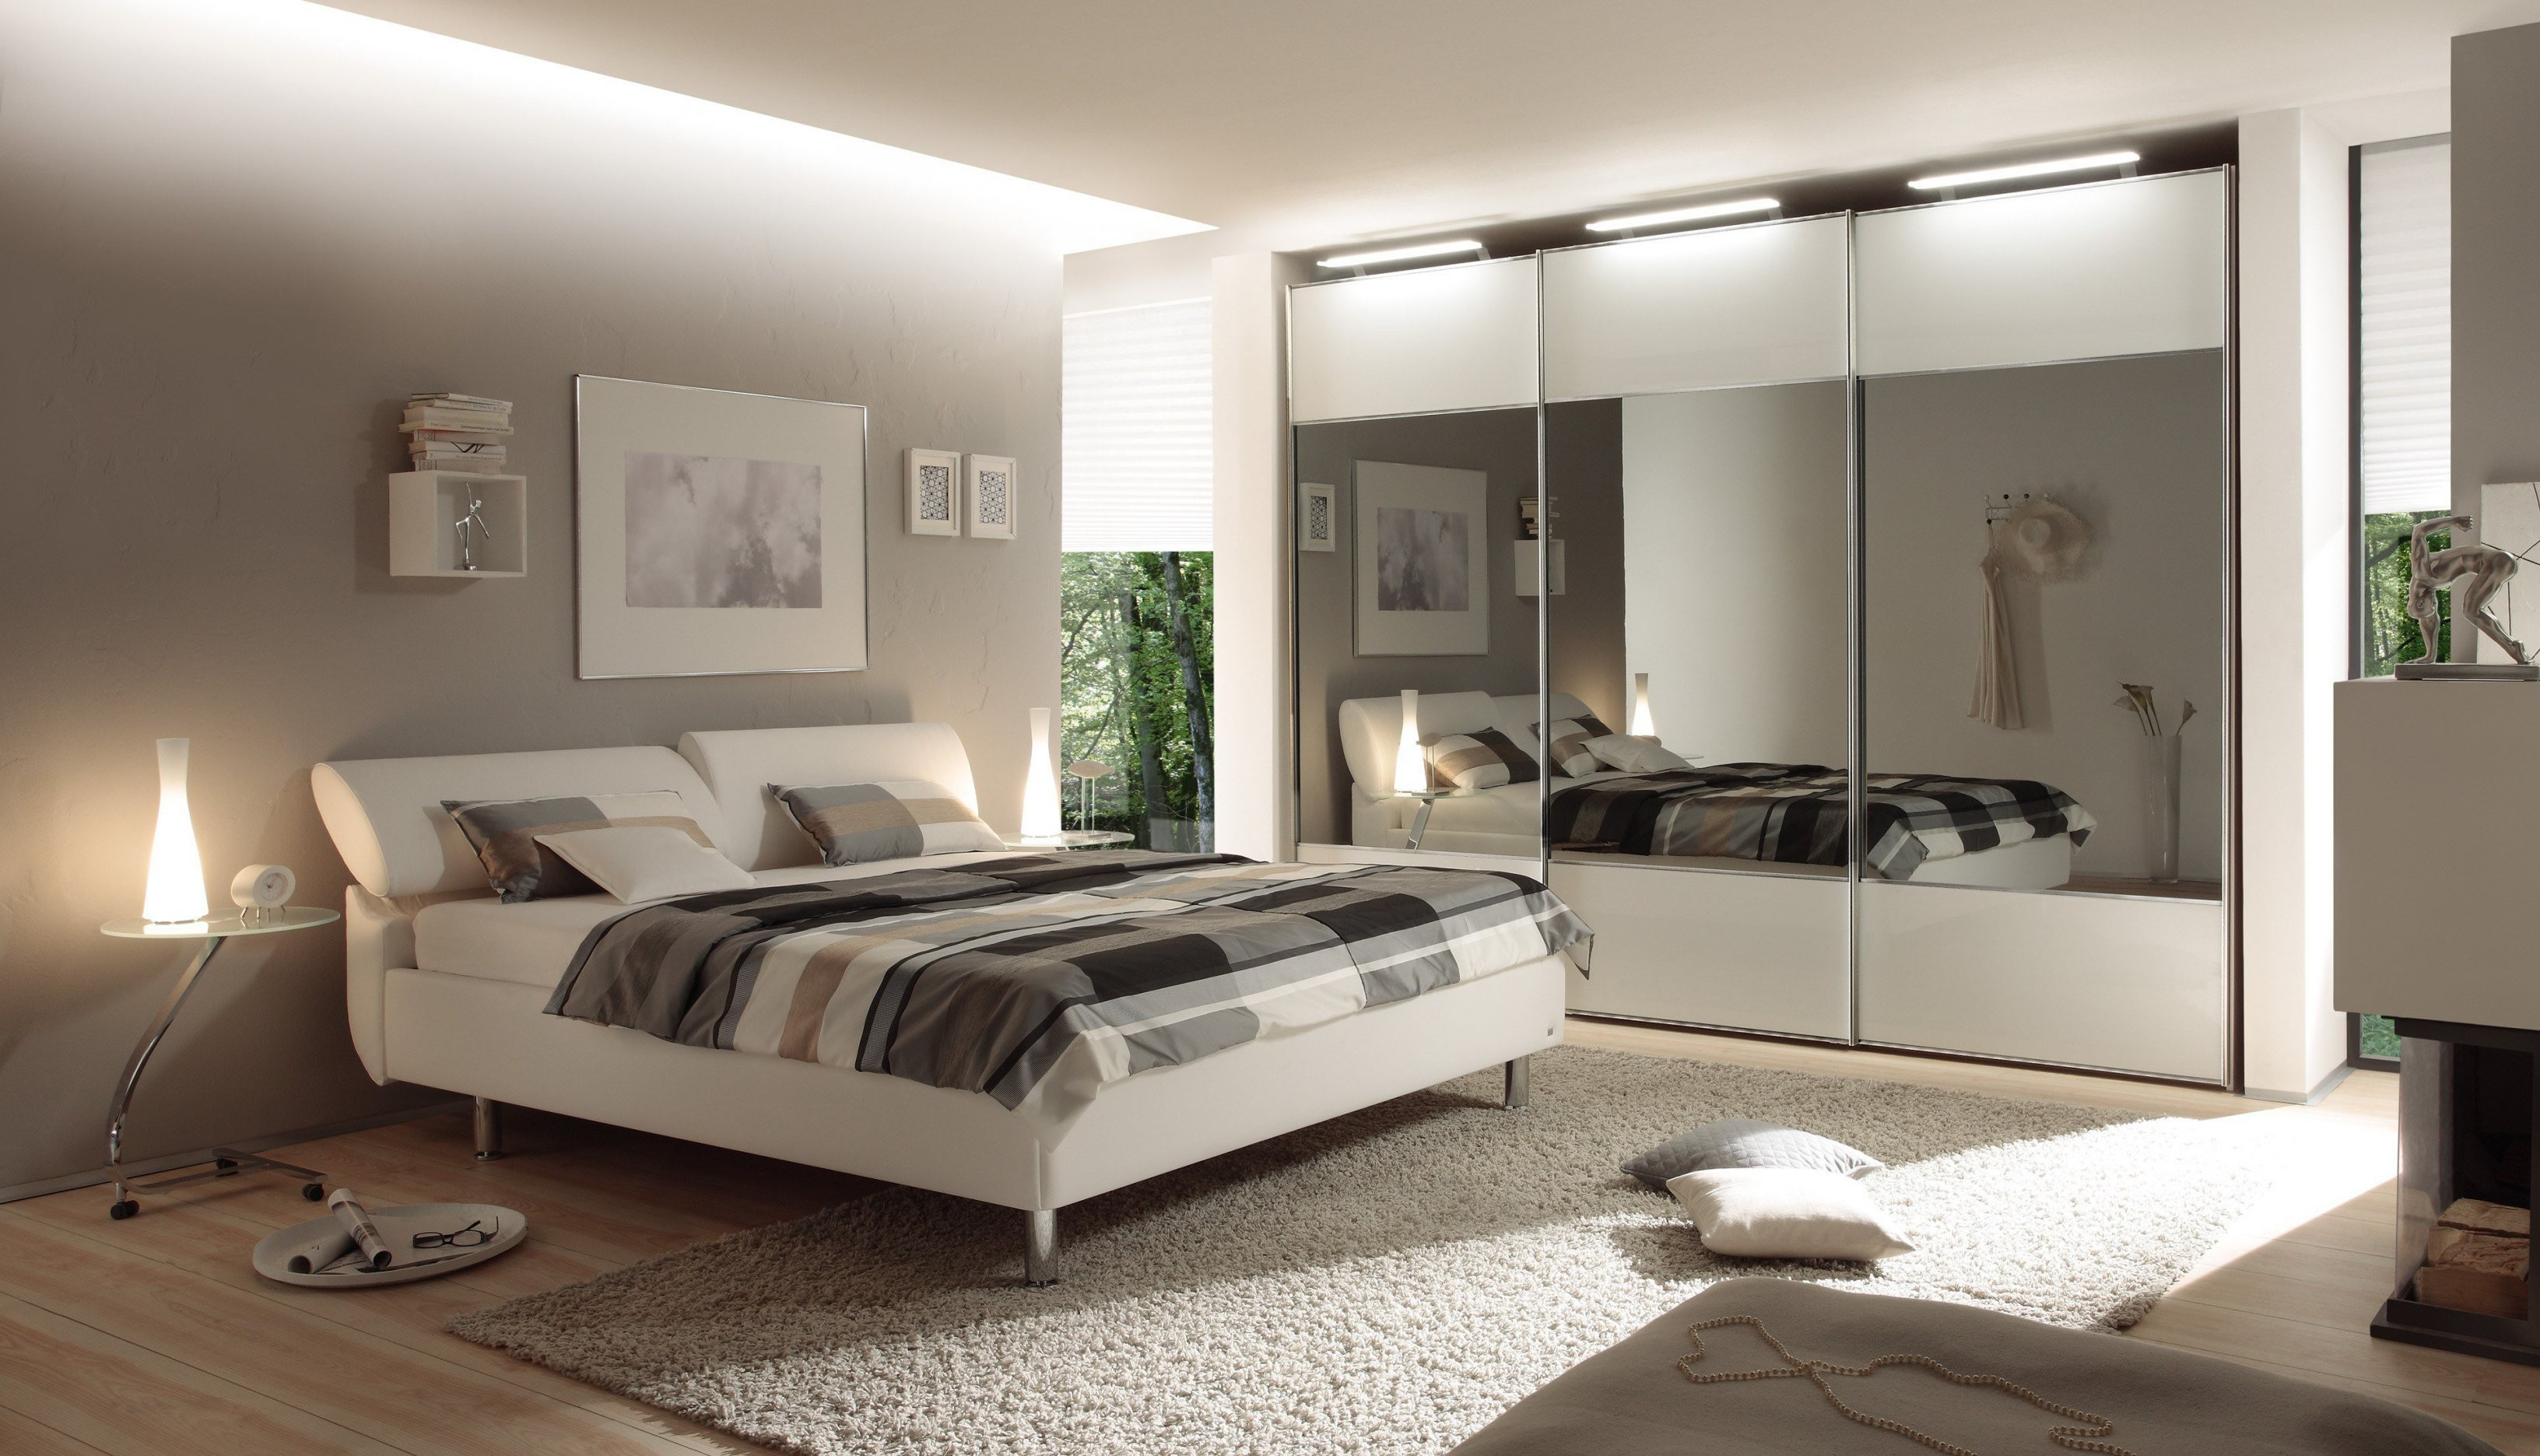 ruf polsterbetten mit bettkasten haus bauen. Black Bedroom Furniture Sets. Home Design Ideas